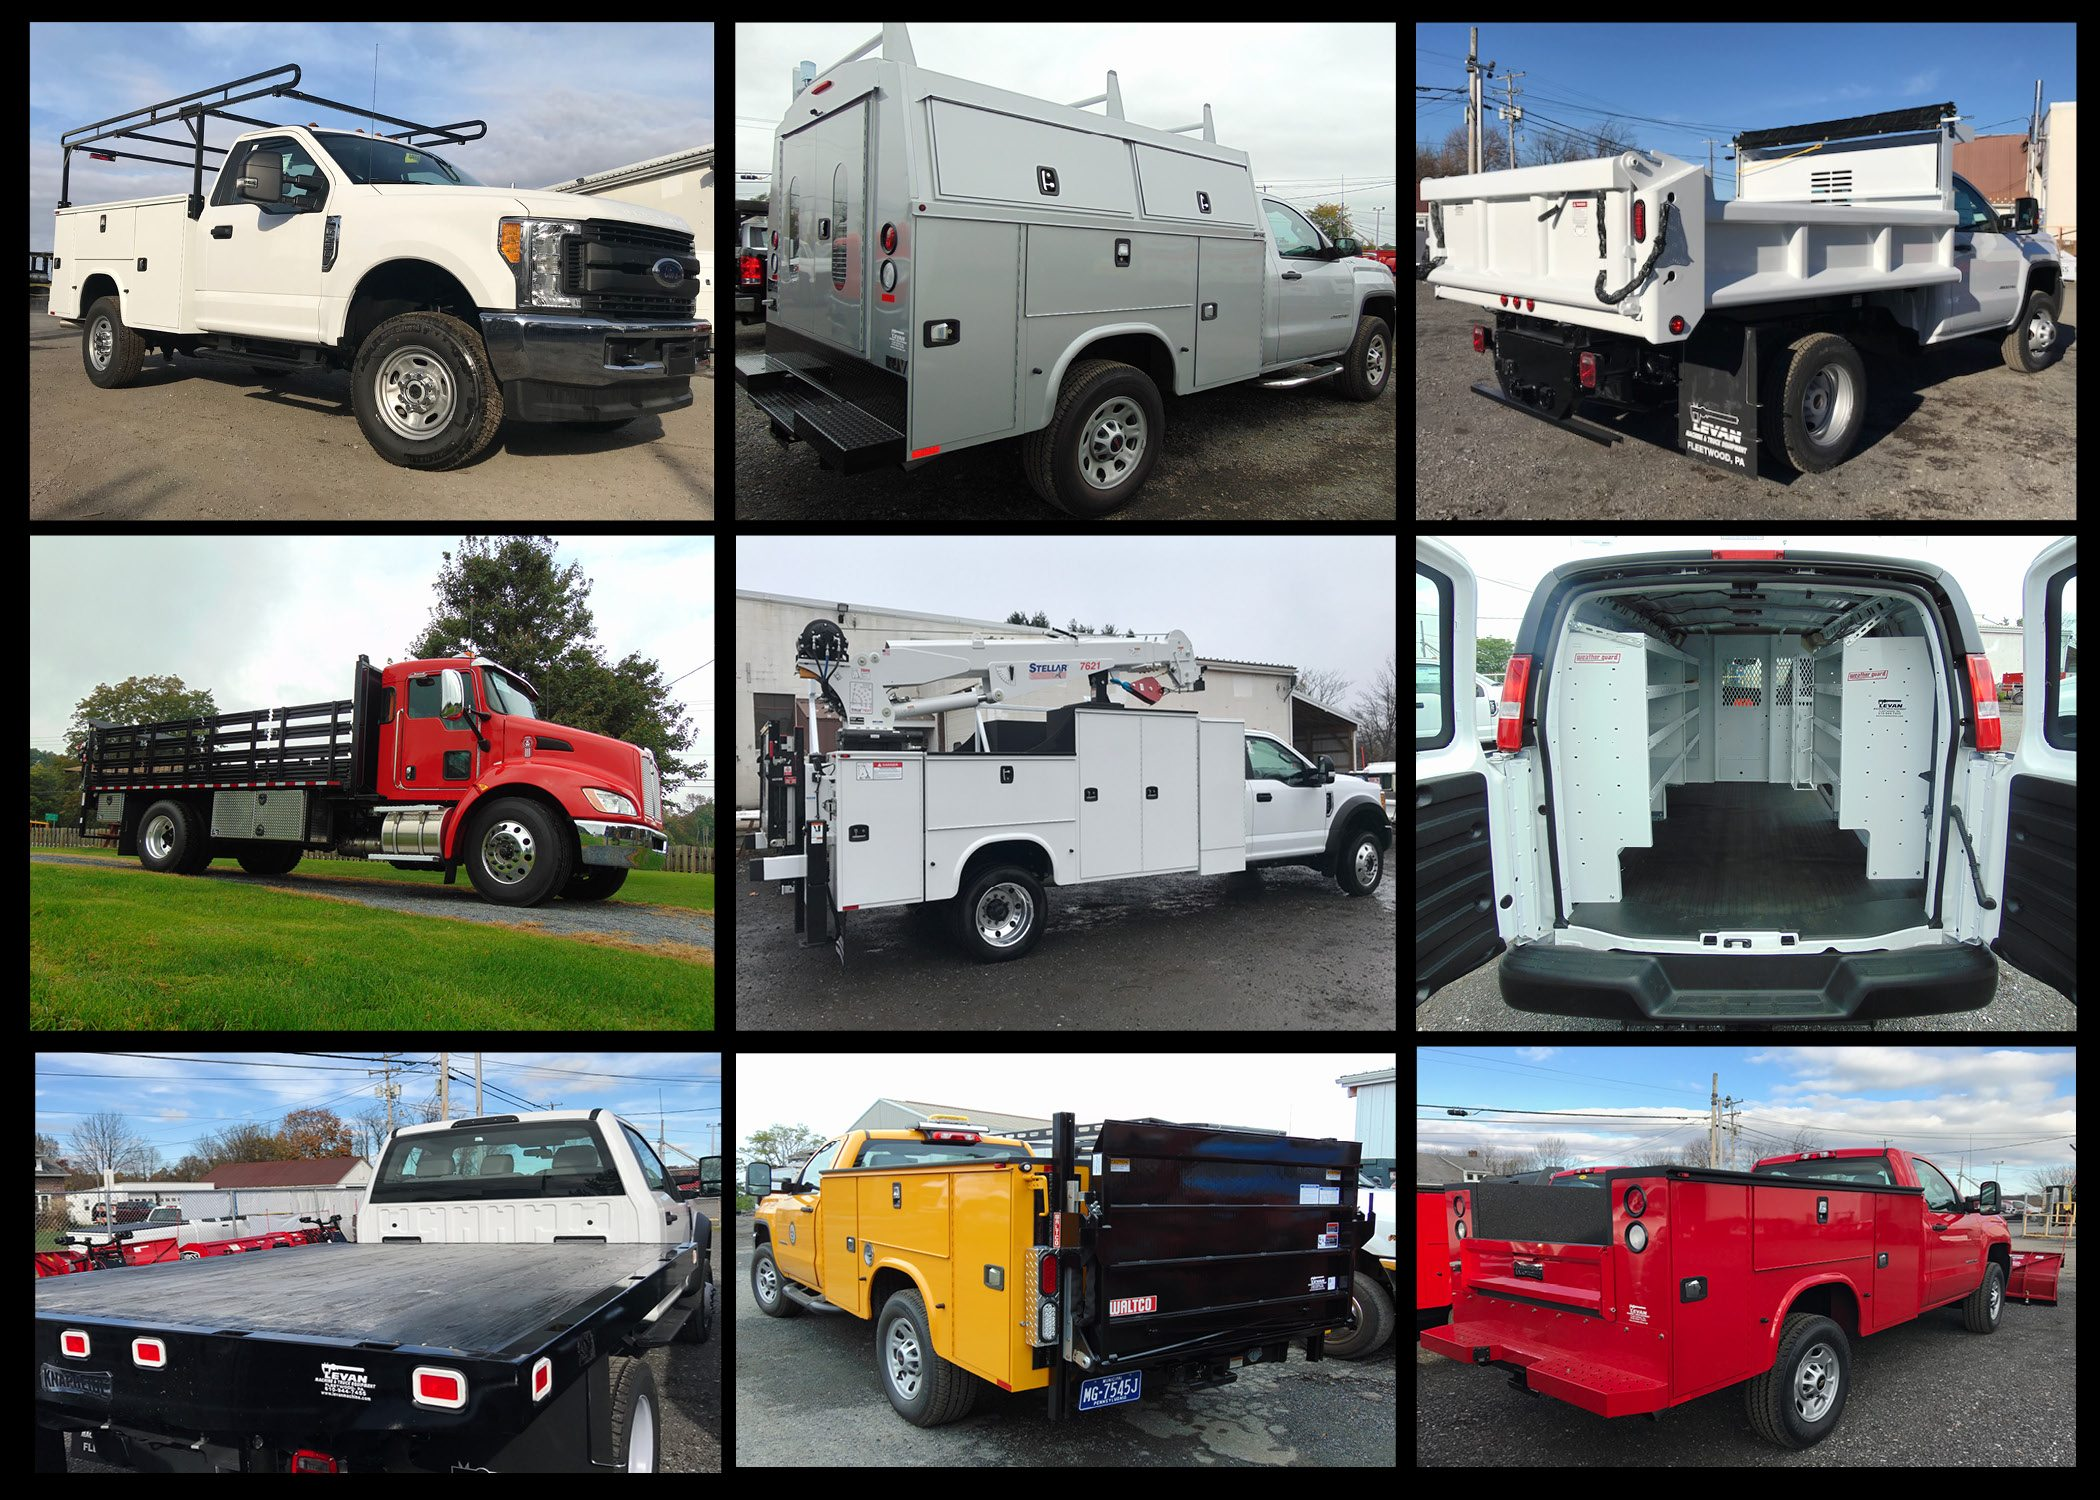 Collage of work trucks and dump trucks